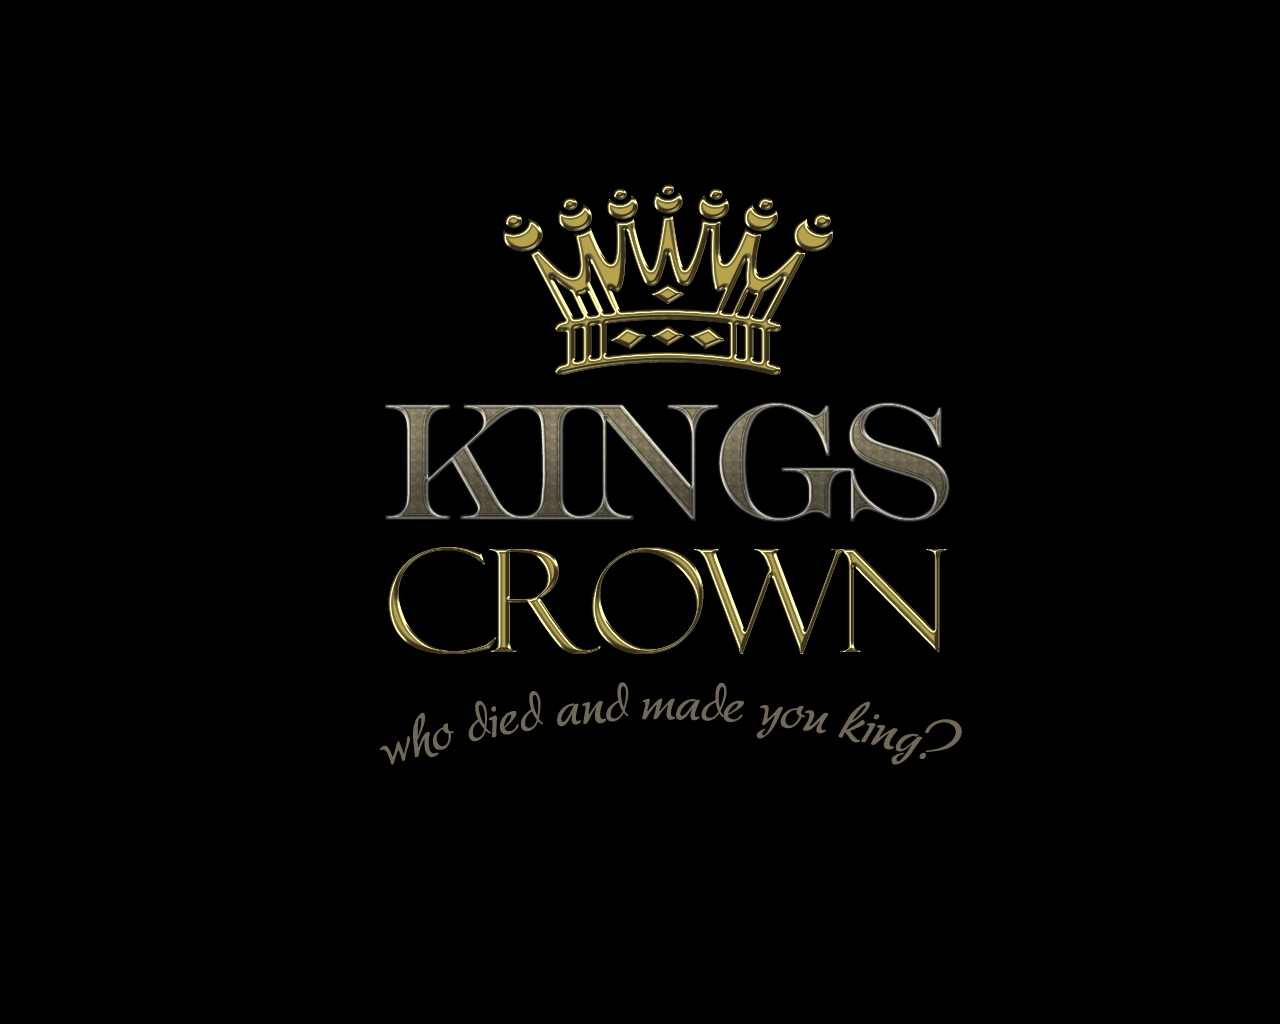 black king crown wallpaper - photo #15